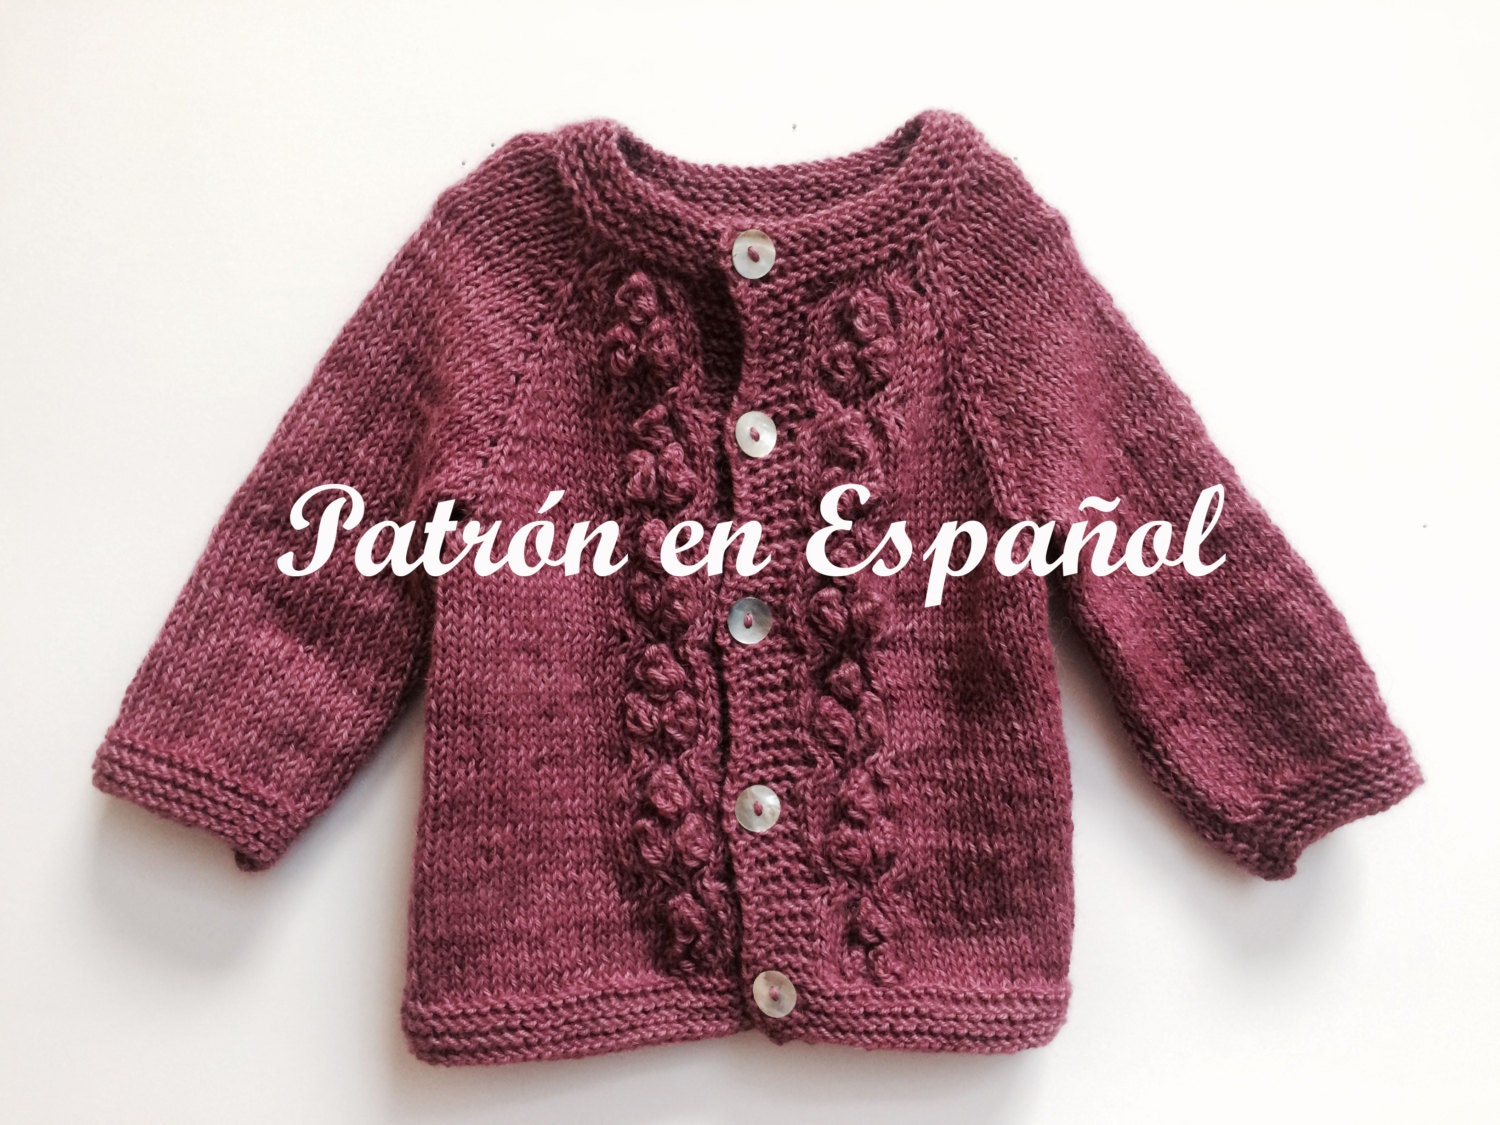 Knitting Patterns For Girl Sweaters : Girl Sweater knitted Pattern knitting Pattern Girl Knitting